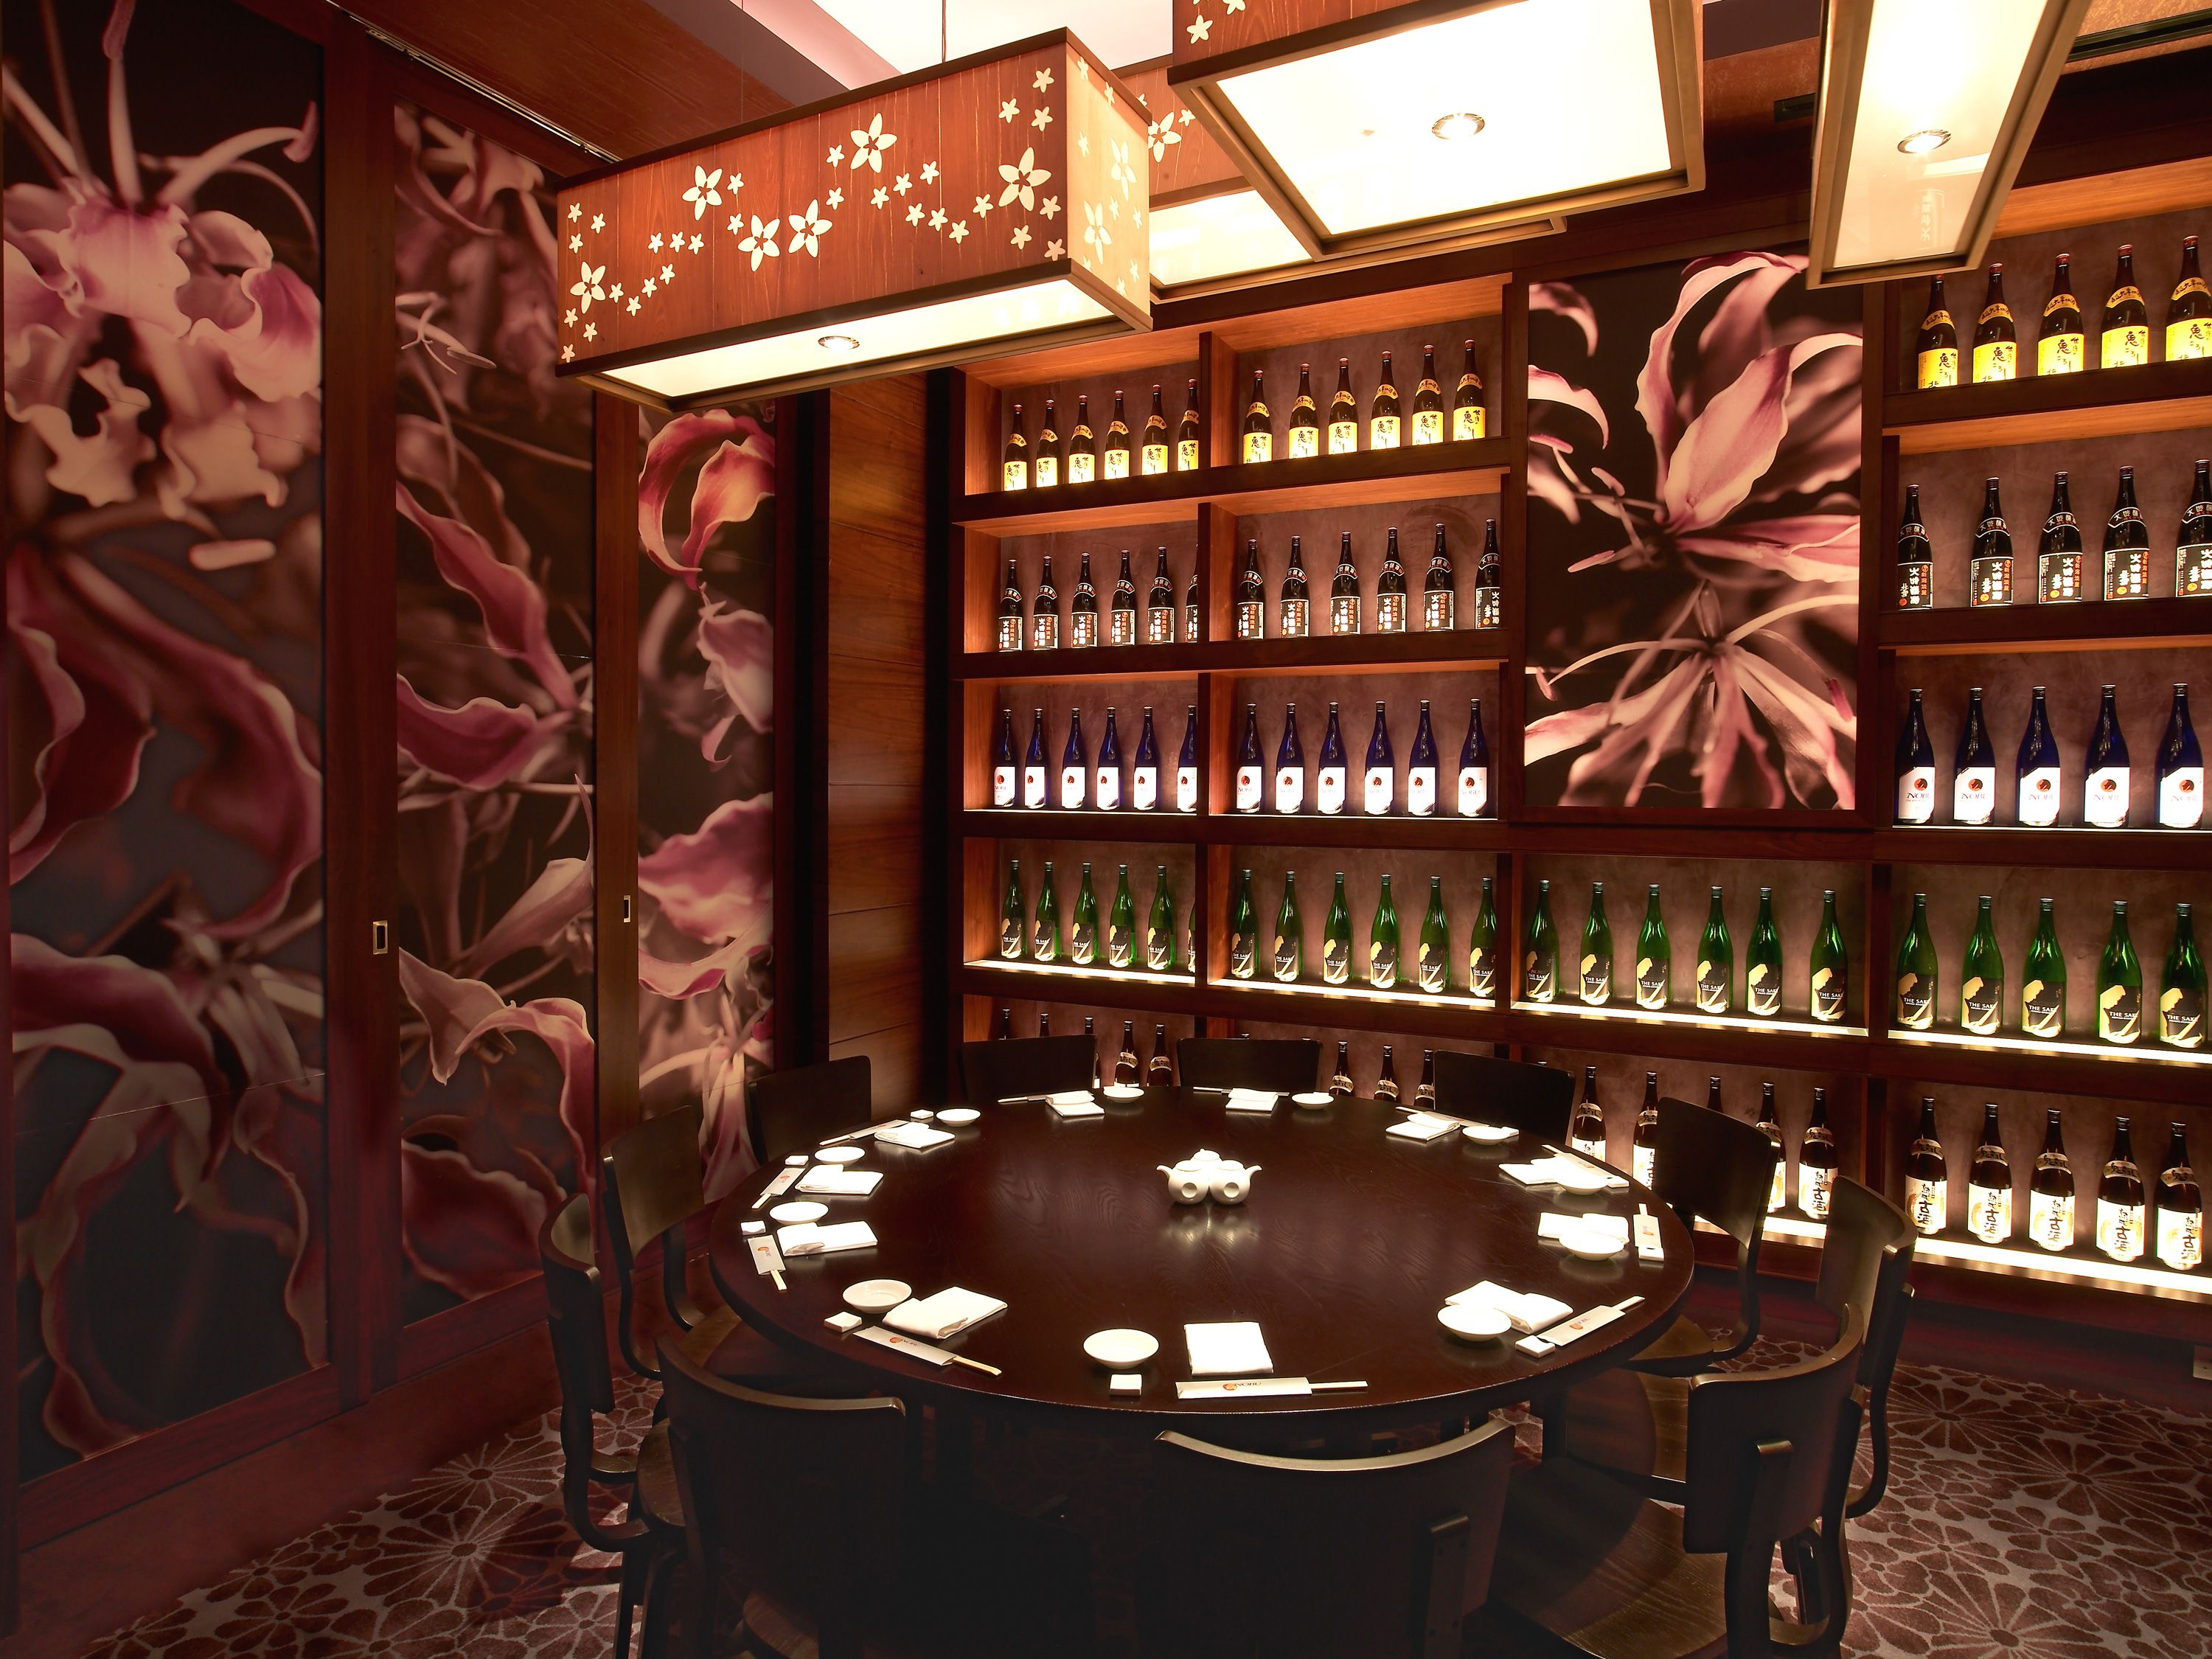 Melbourne private dining rooms dining room design ideas melbourne private dining rooms inspiration private dining experience at nobu dubai japanese restaurant decorating design dzzzfo